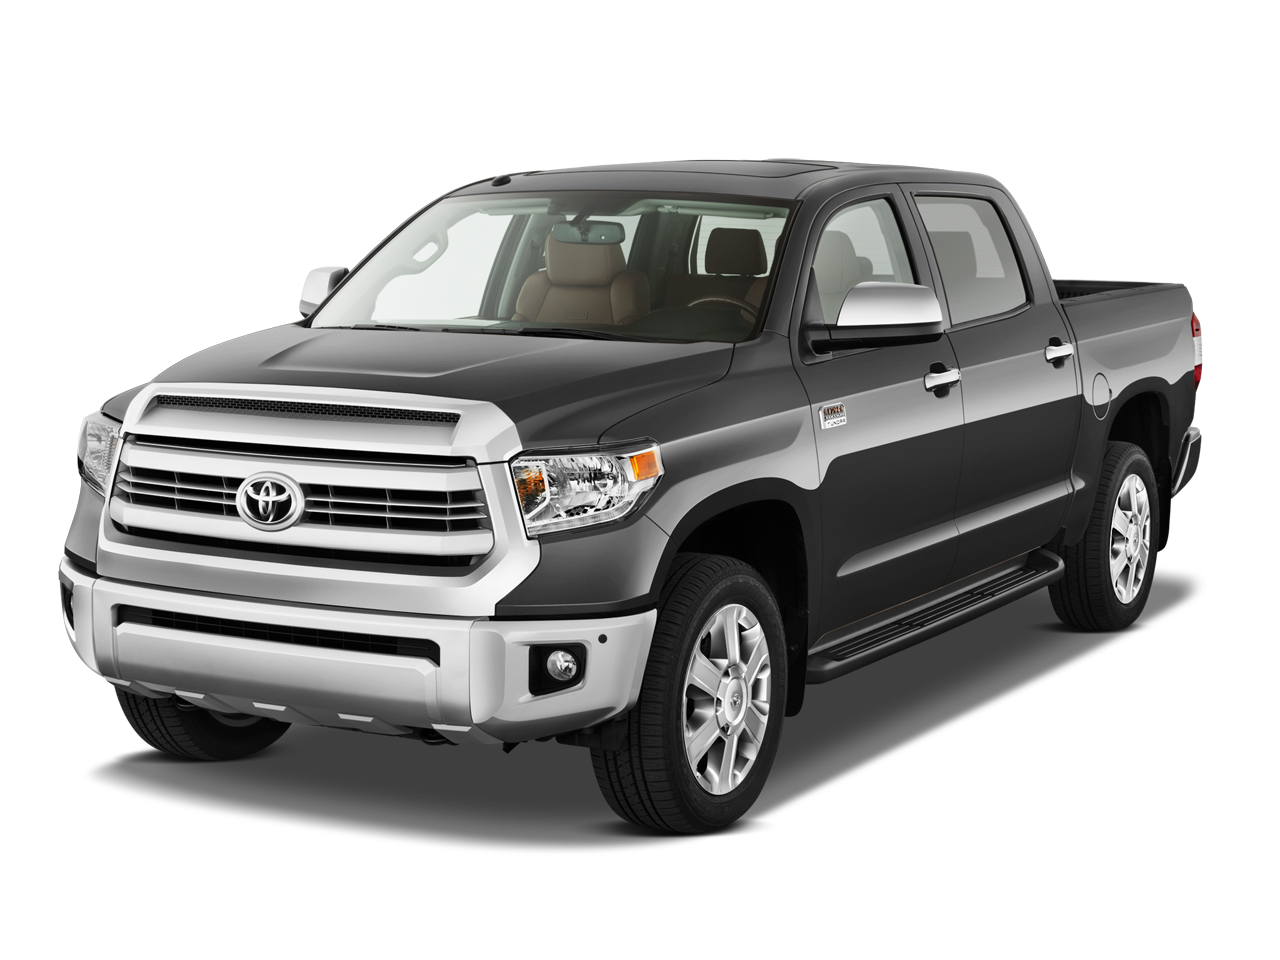 New 2017 toyota tundra 1794 edition crew max pickup near for Gateway motors pierre sd